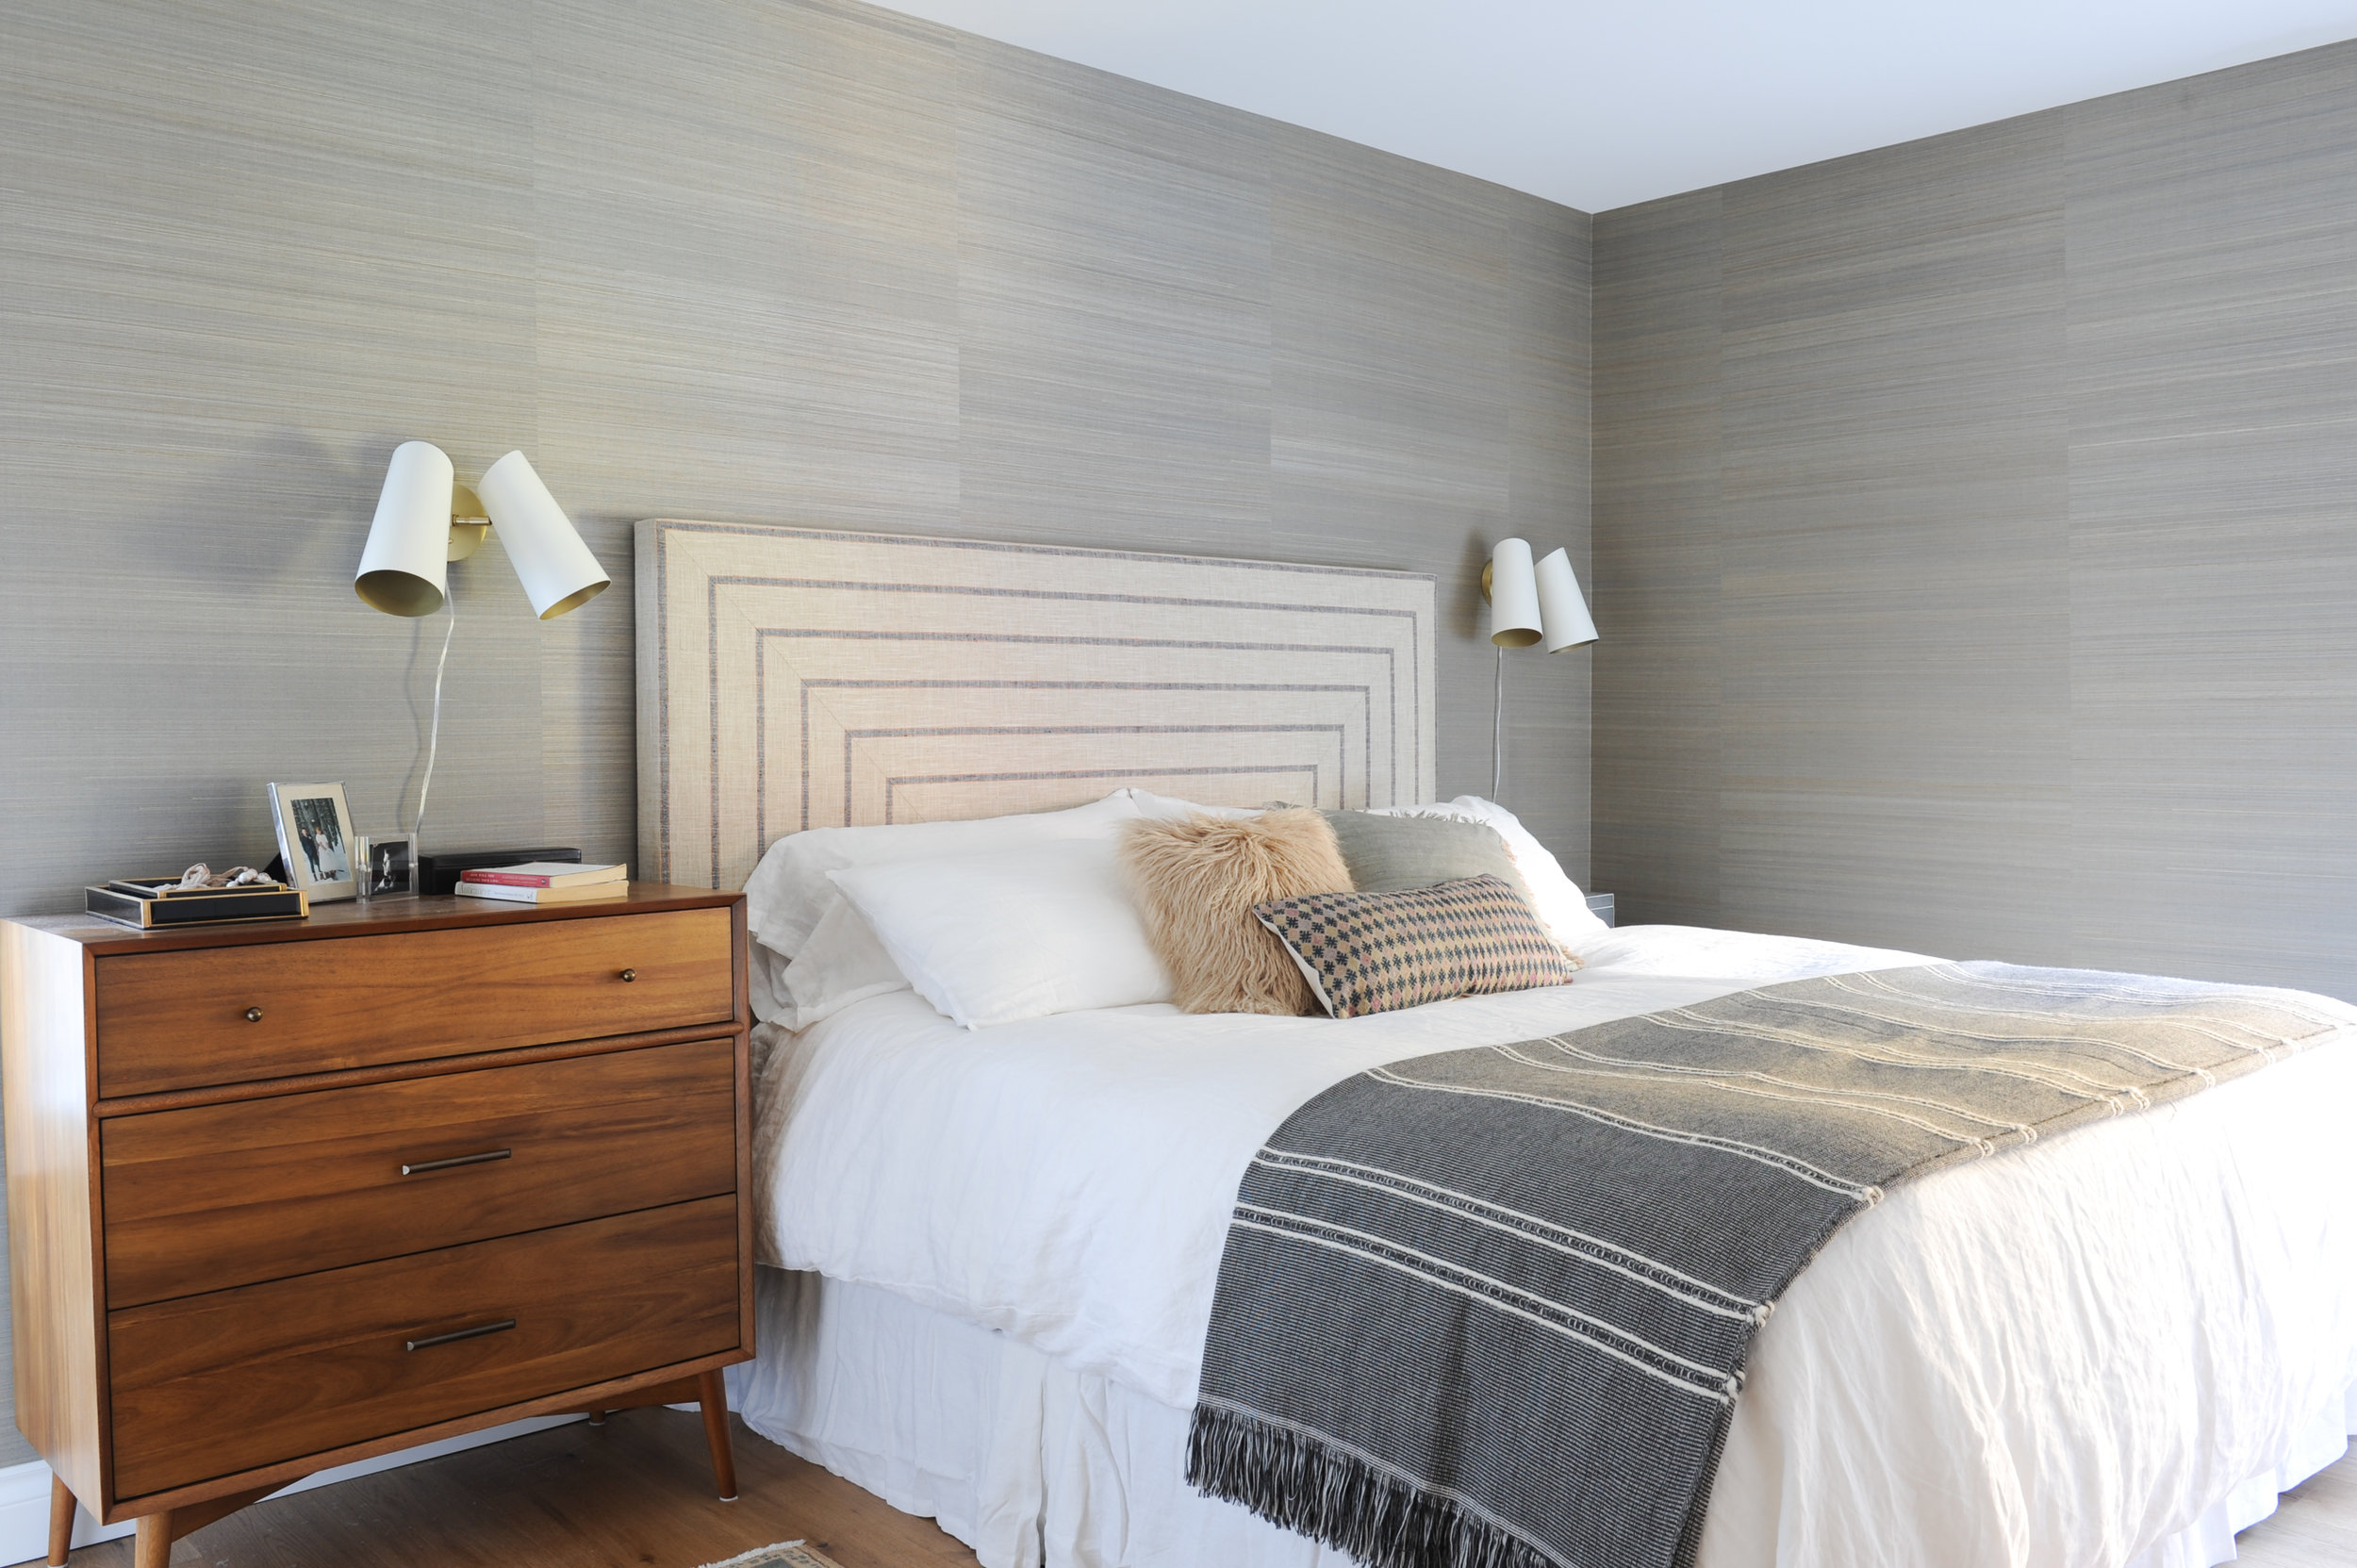 A large bed with a geometrically patterned headboard sits next to a dark wood bedside table dresser drawer. The walls are made up of beige panels. Above each bedside table sits two wall sconces.